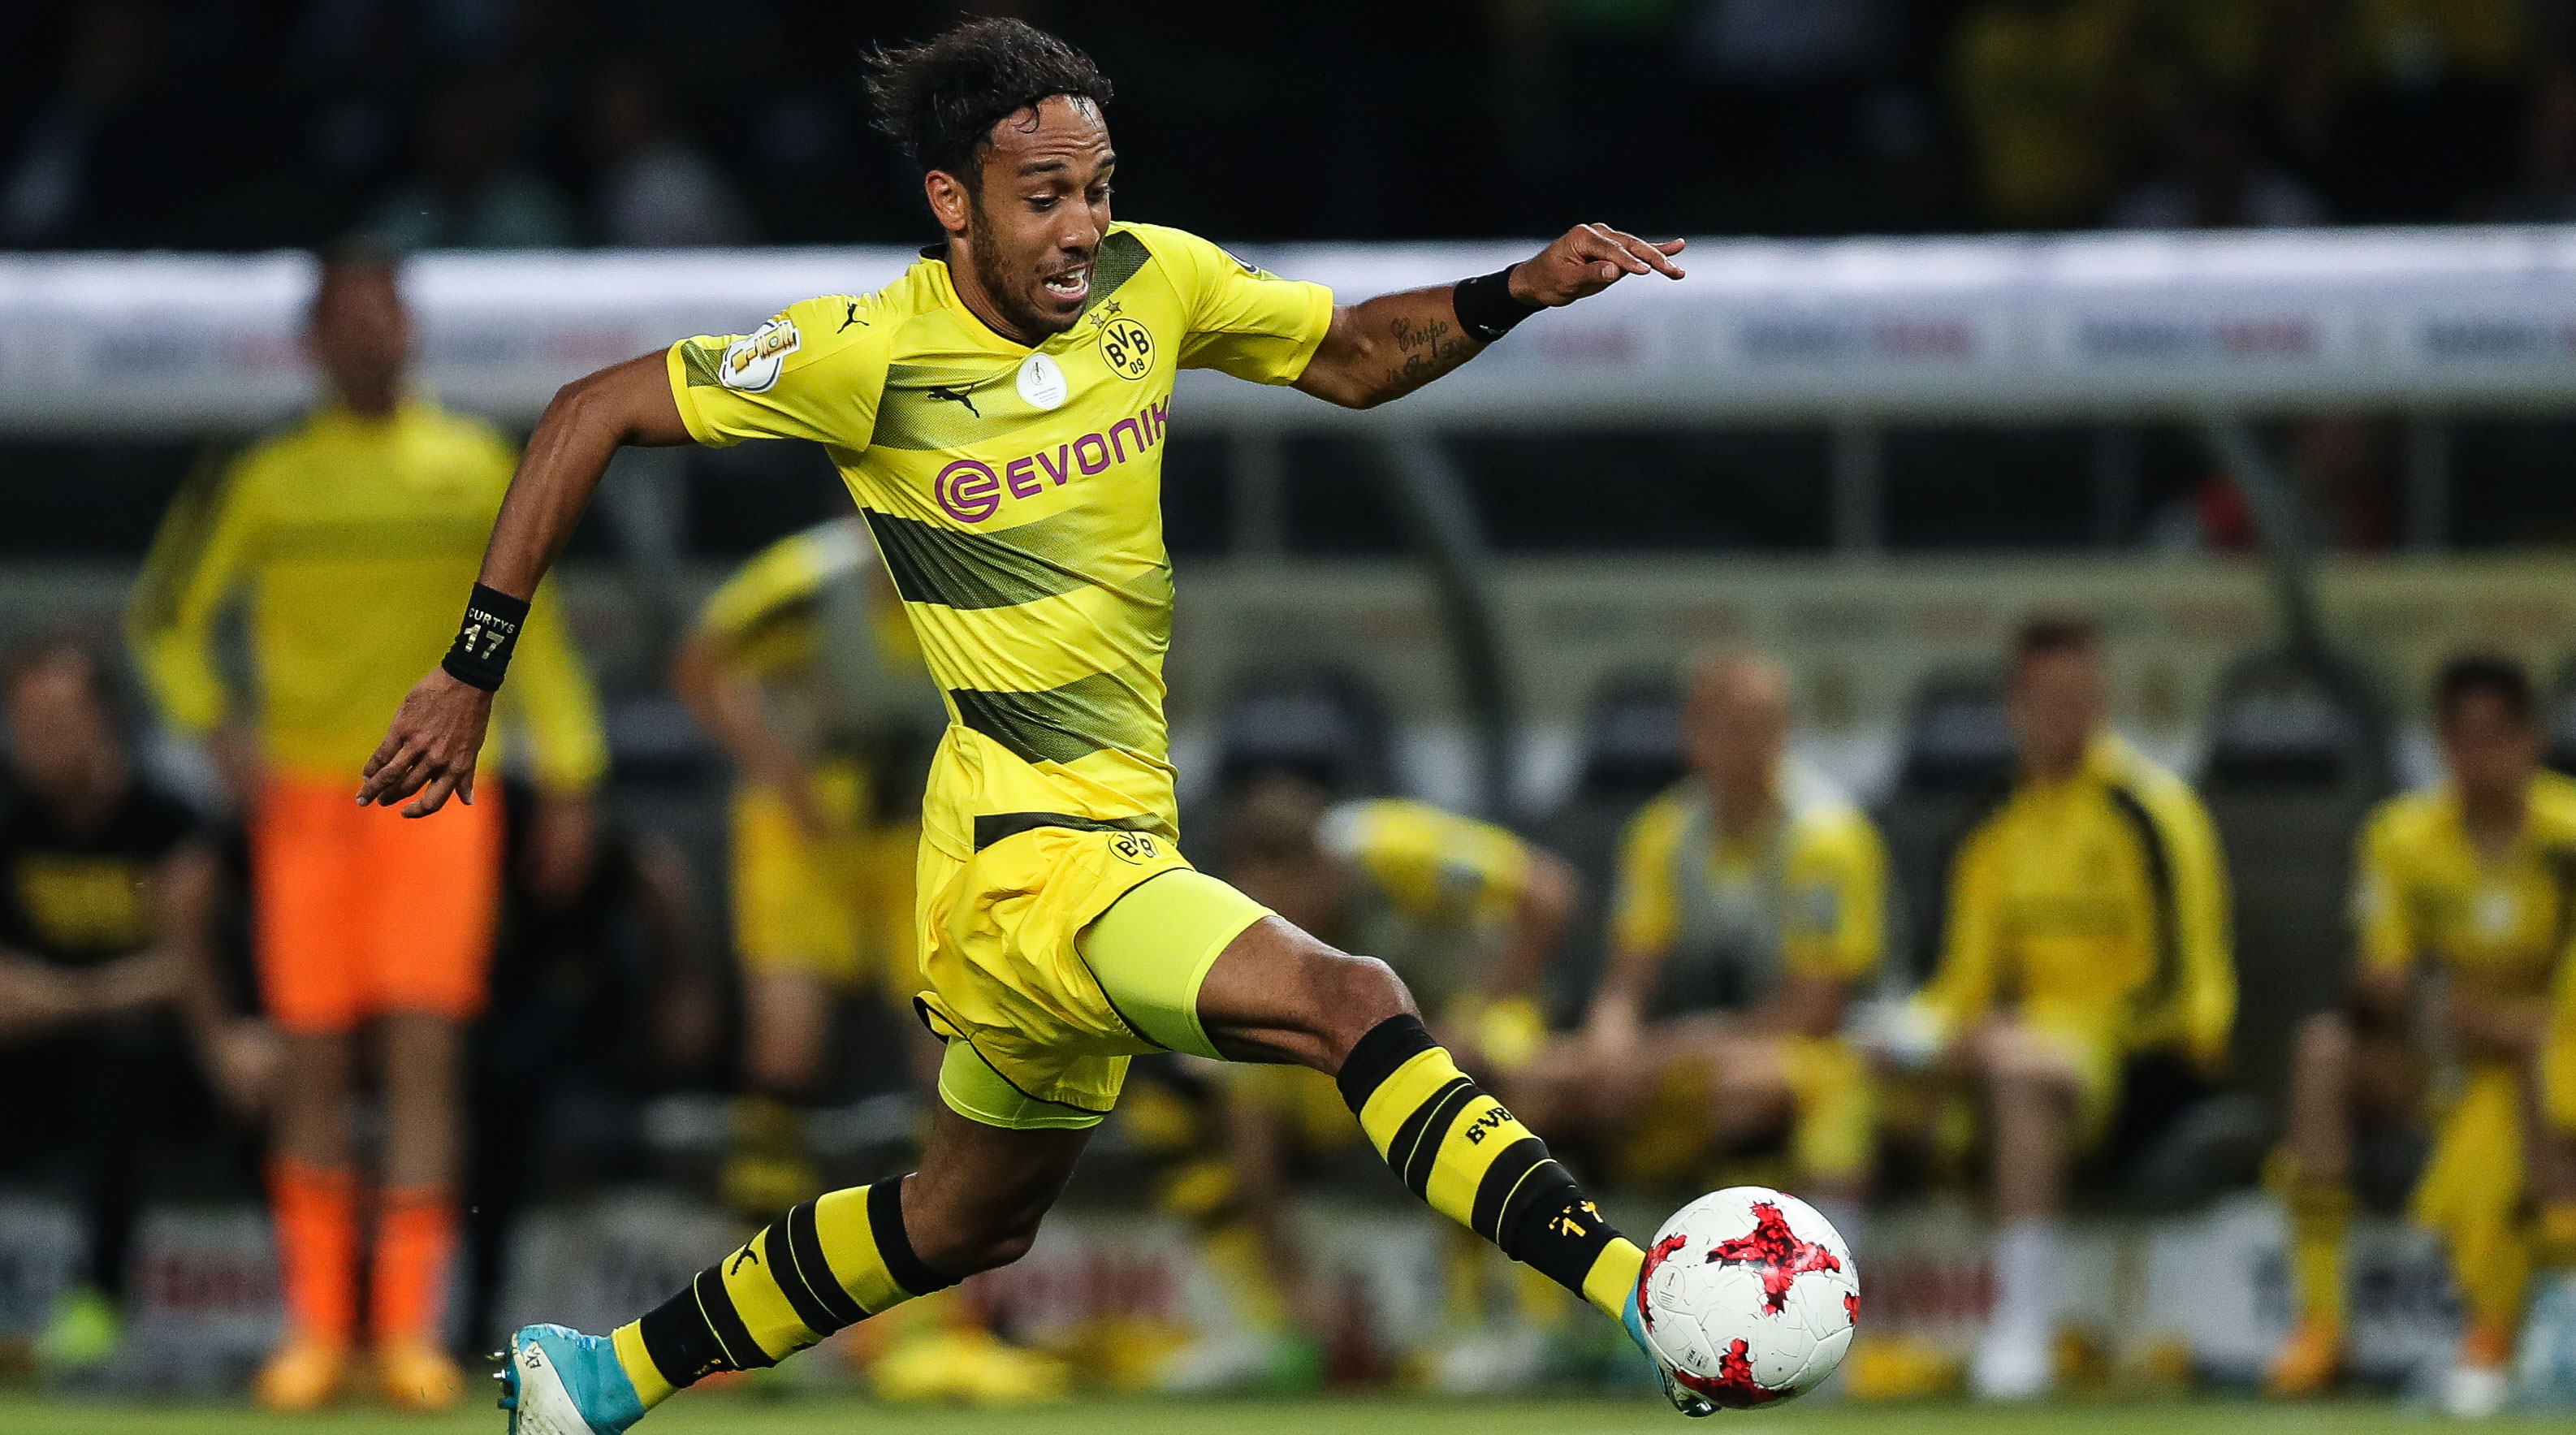 Aubameyang Picture: Transfer News: Aubameyang To PSG, Antoine Griezmann